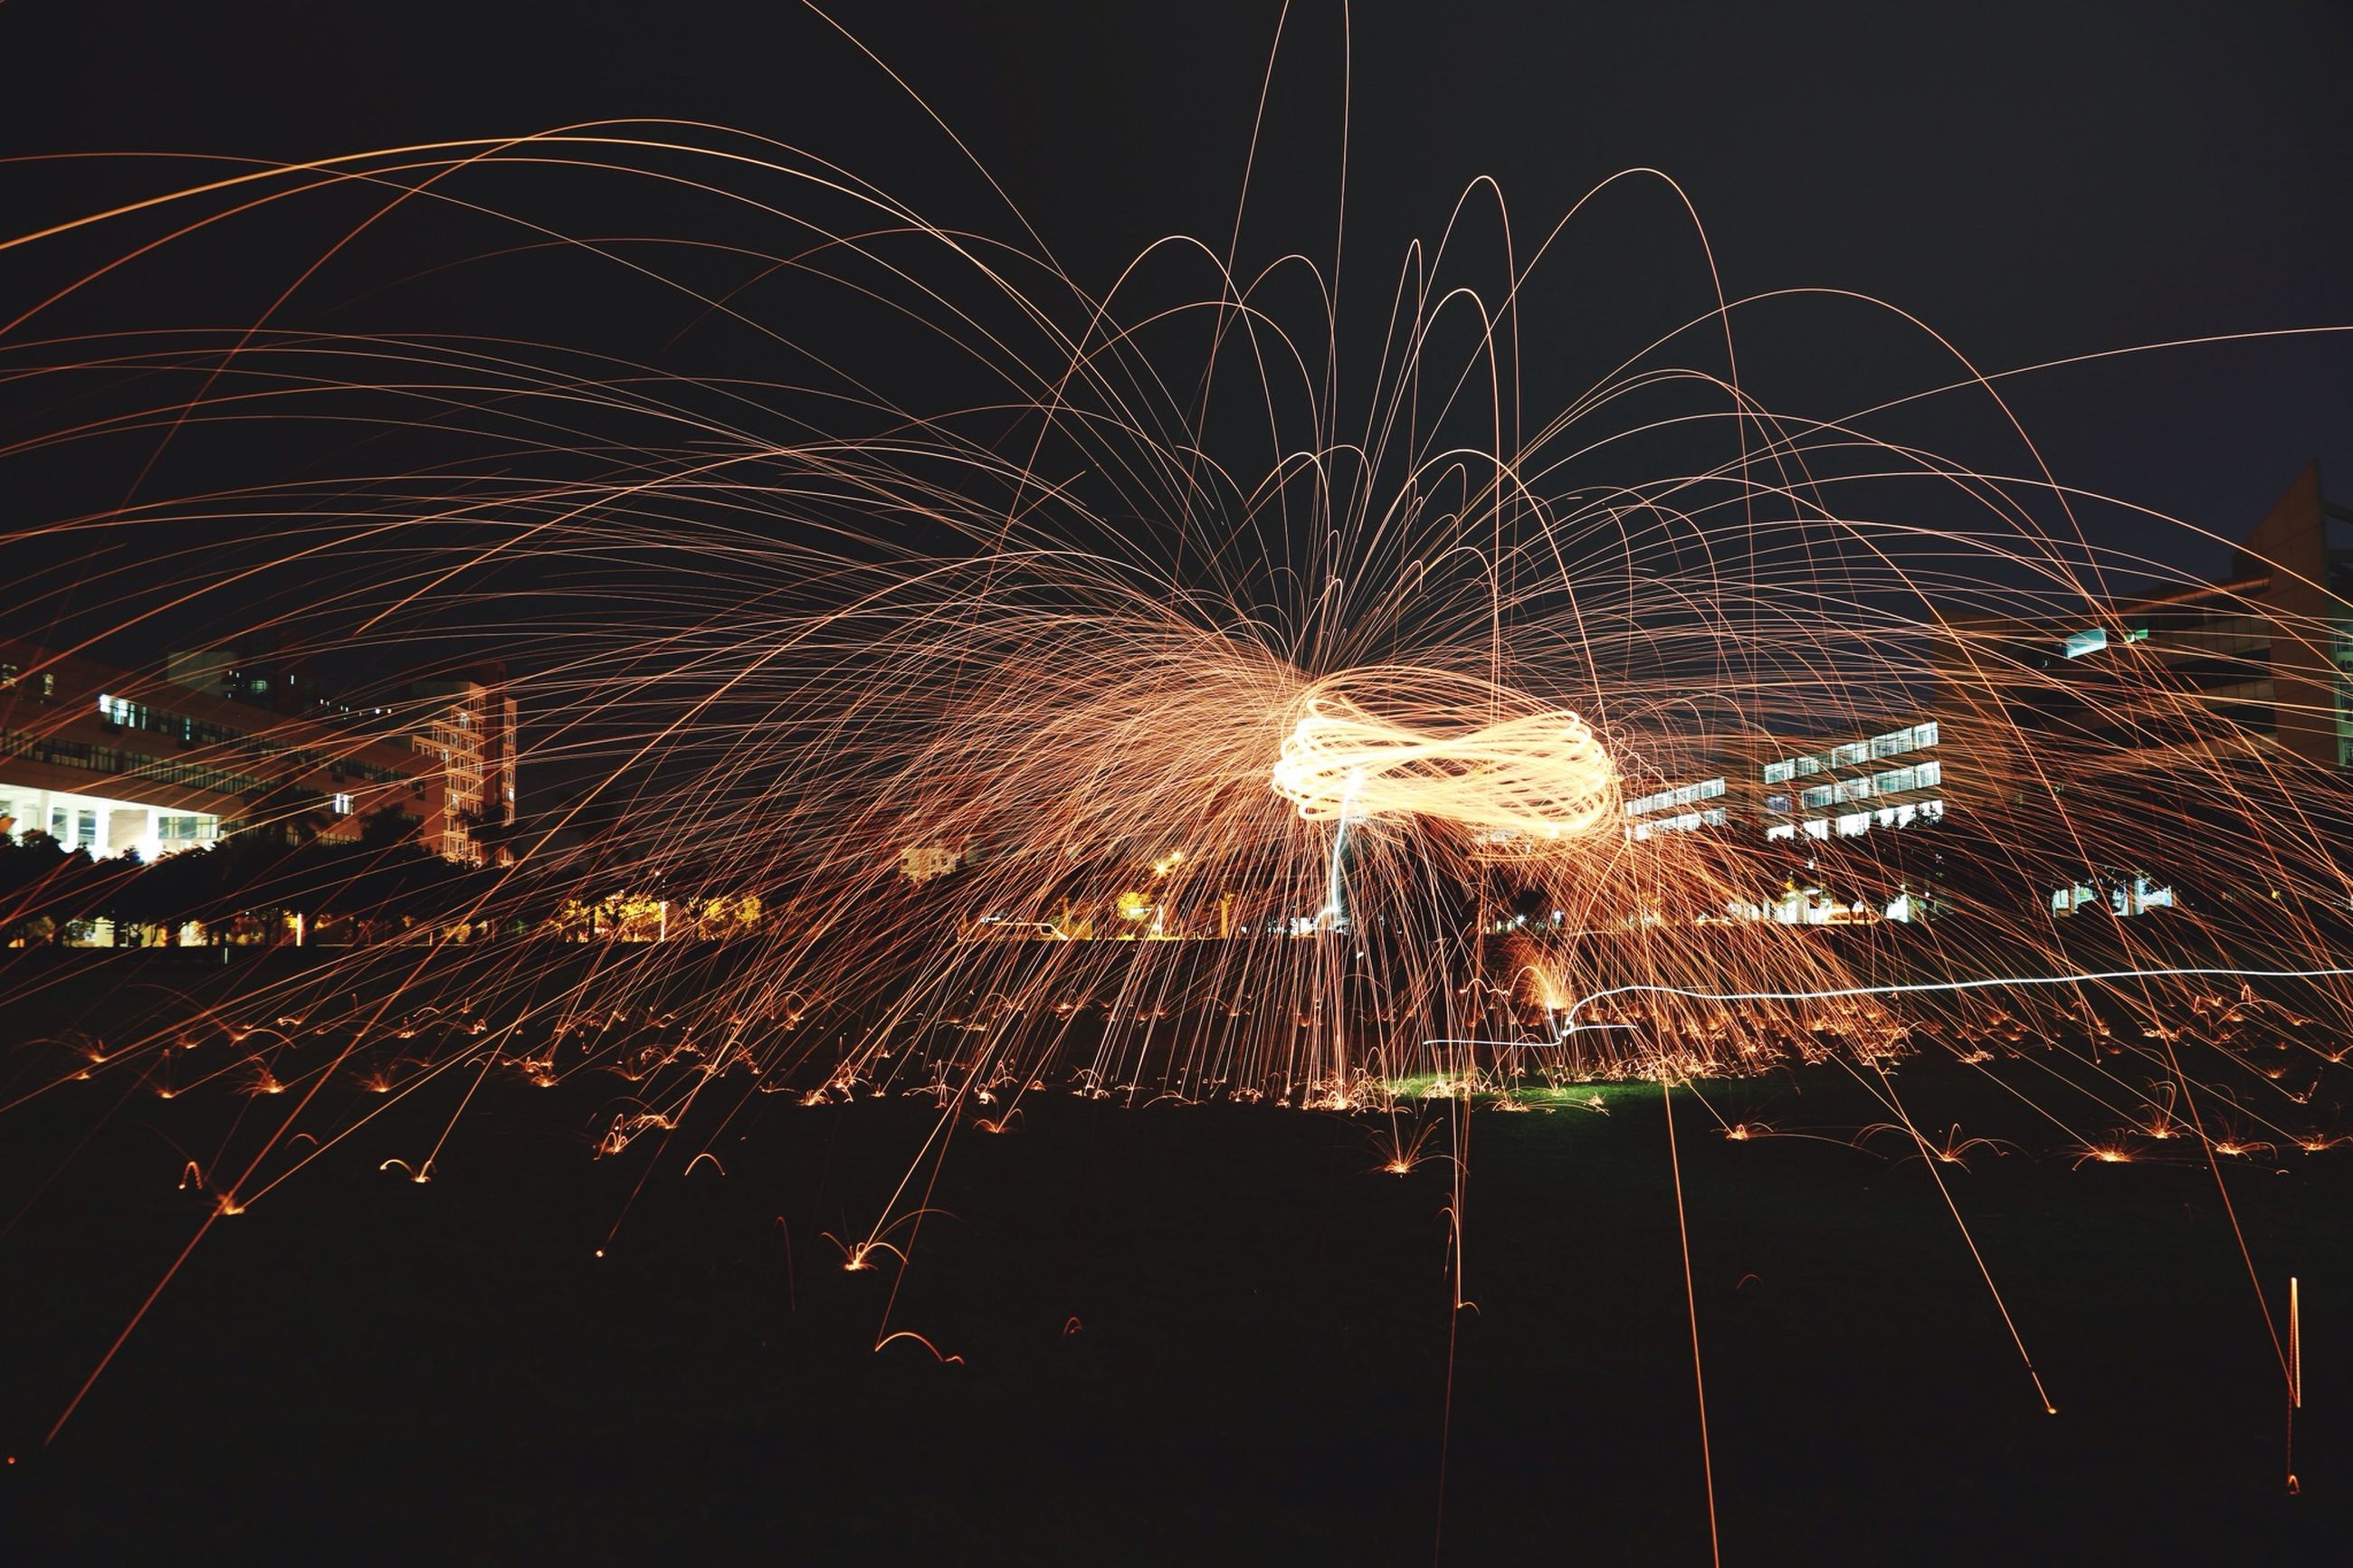 night, illuminated, long exposure, firework display, celebration, glowing, sparks, motion, firework - man made object, exploding, arts culture and entertainment, lighting equipment, event, blurred motion, firework, sky, low angle view, entertainment, light, light - natural phenomenon